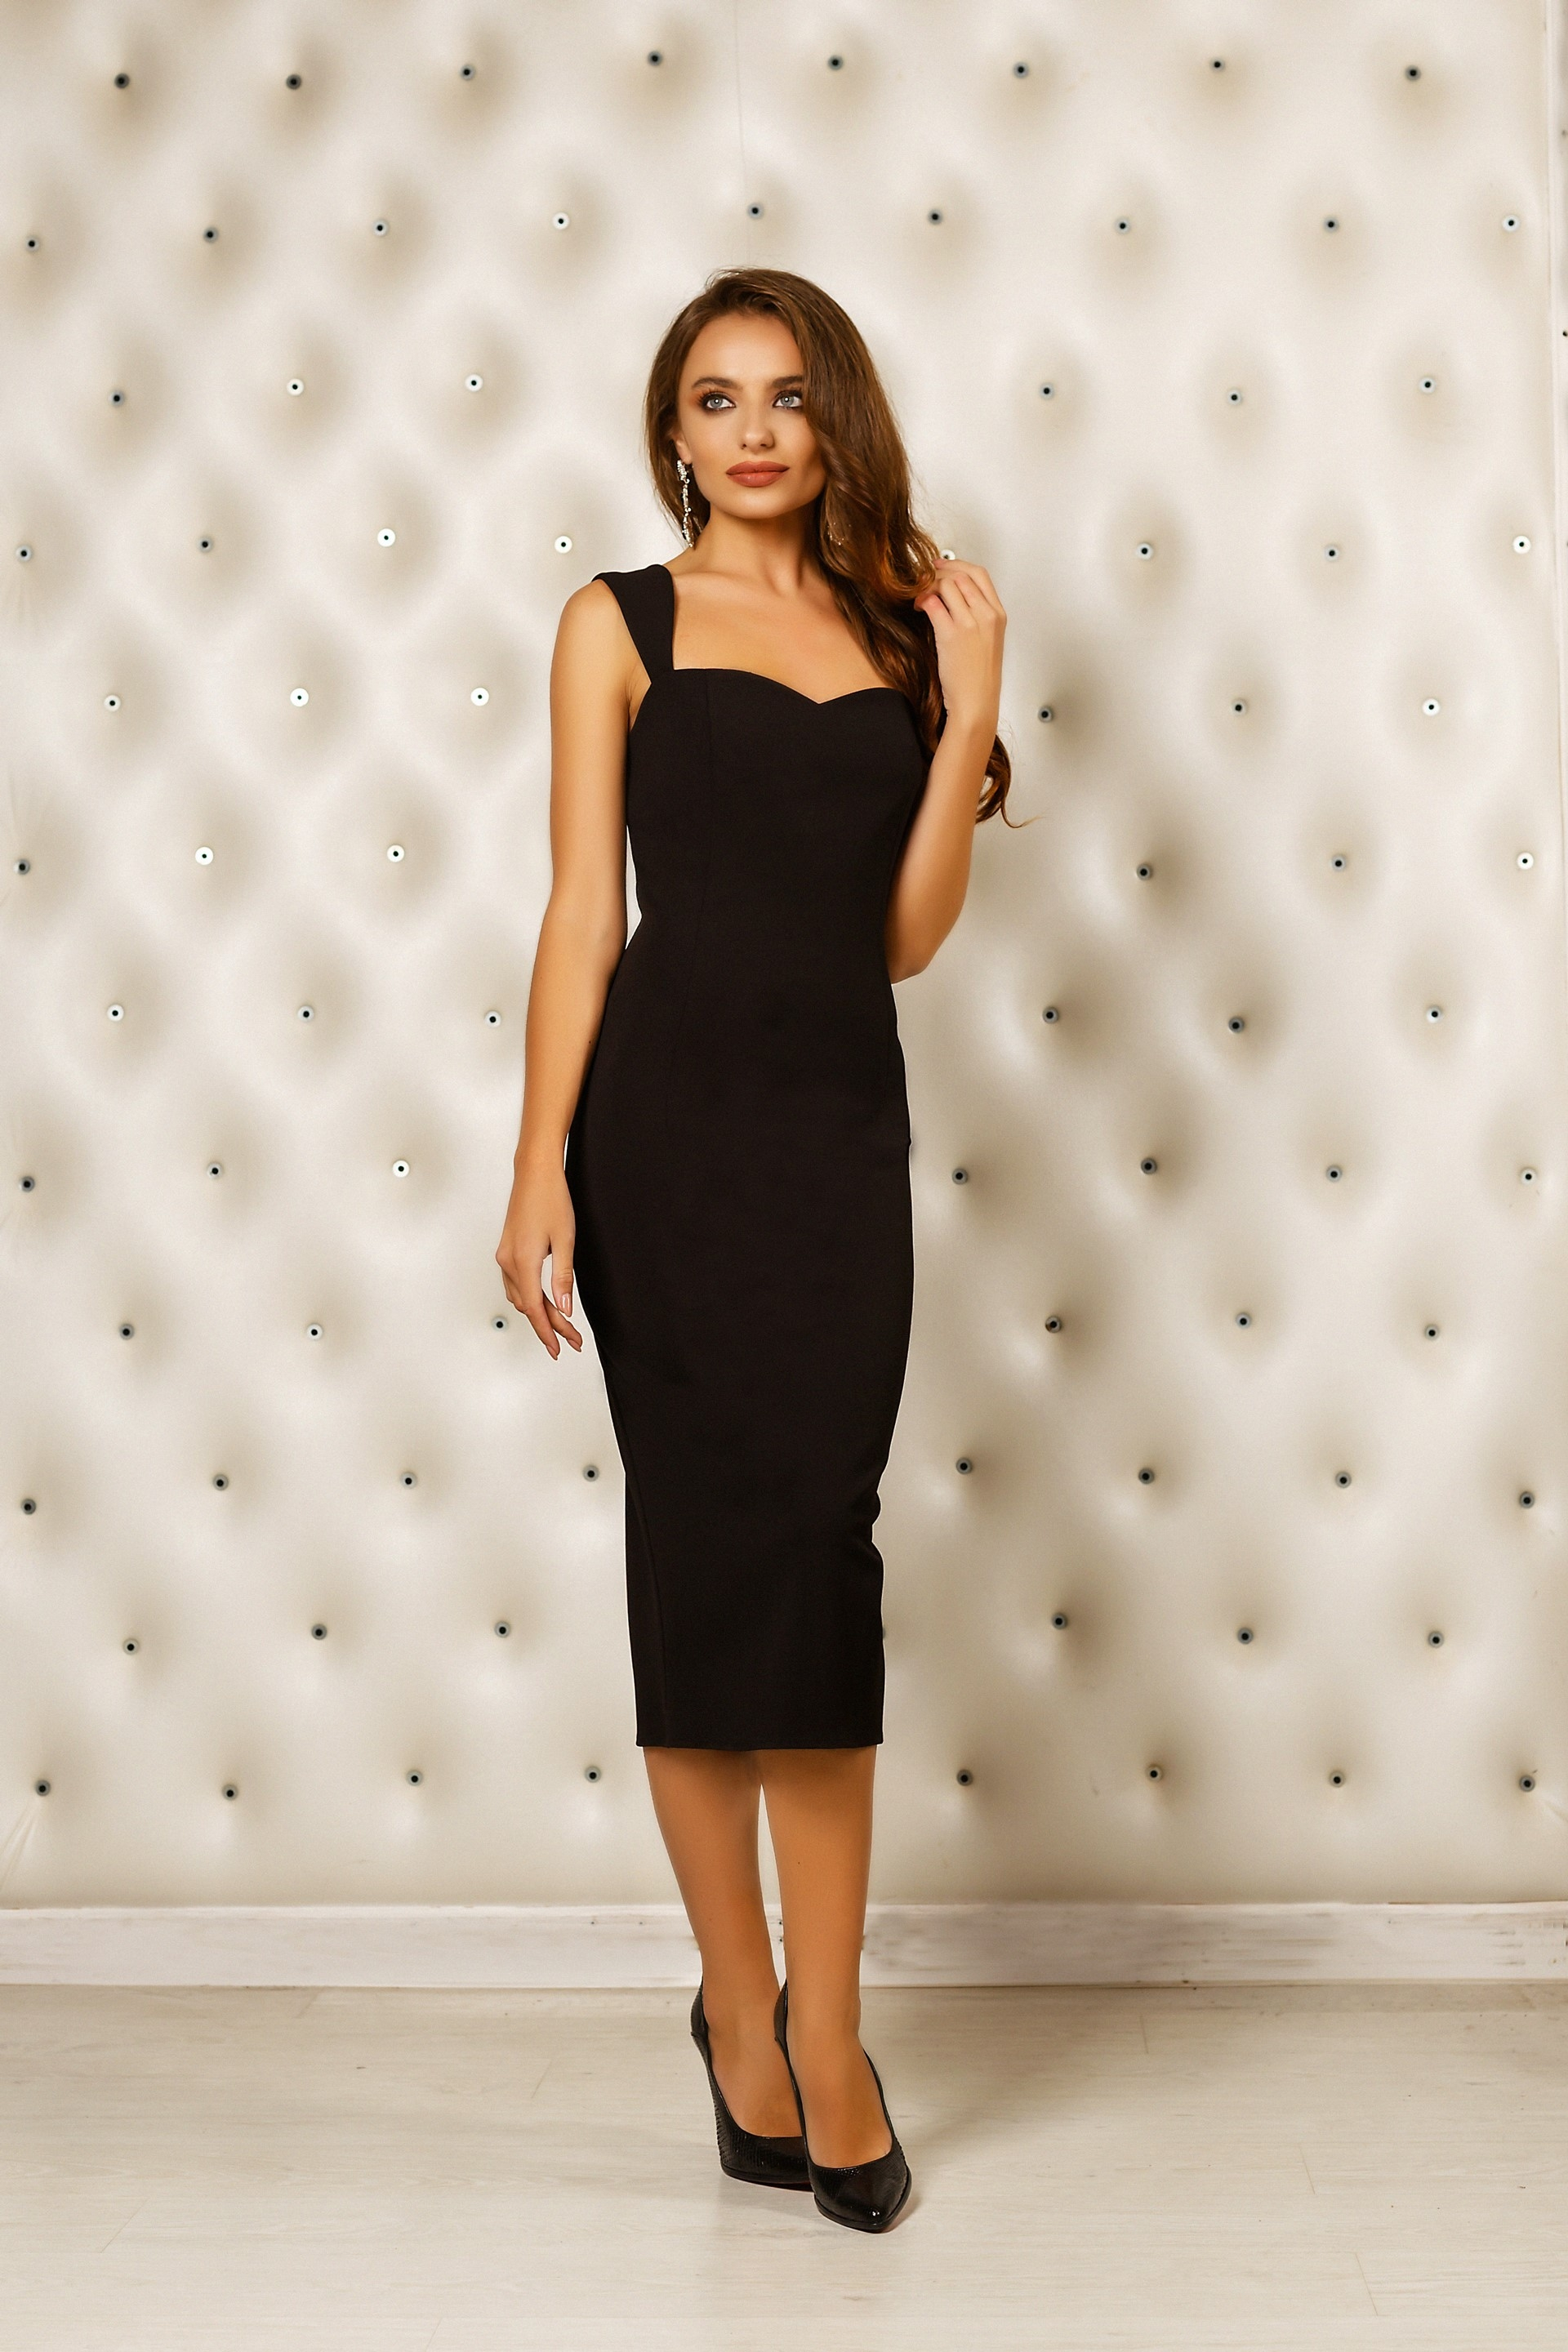 Below the knee black cocktail dress